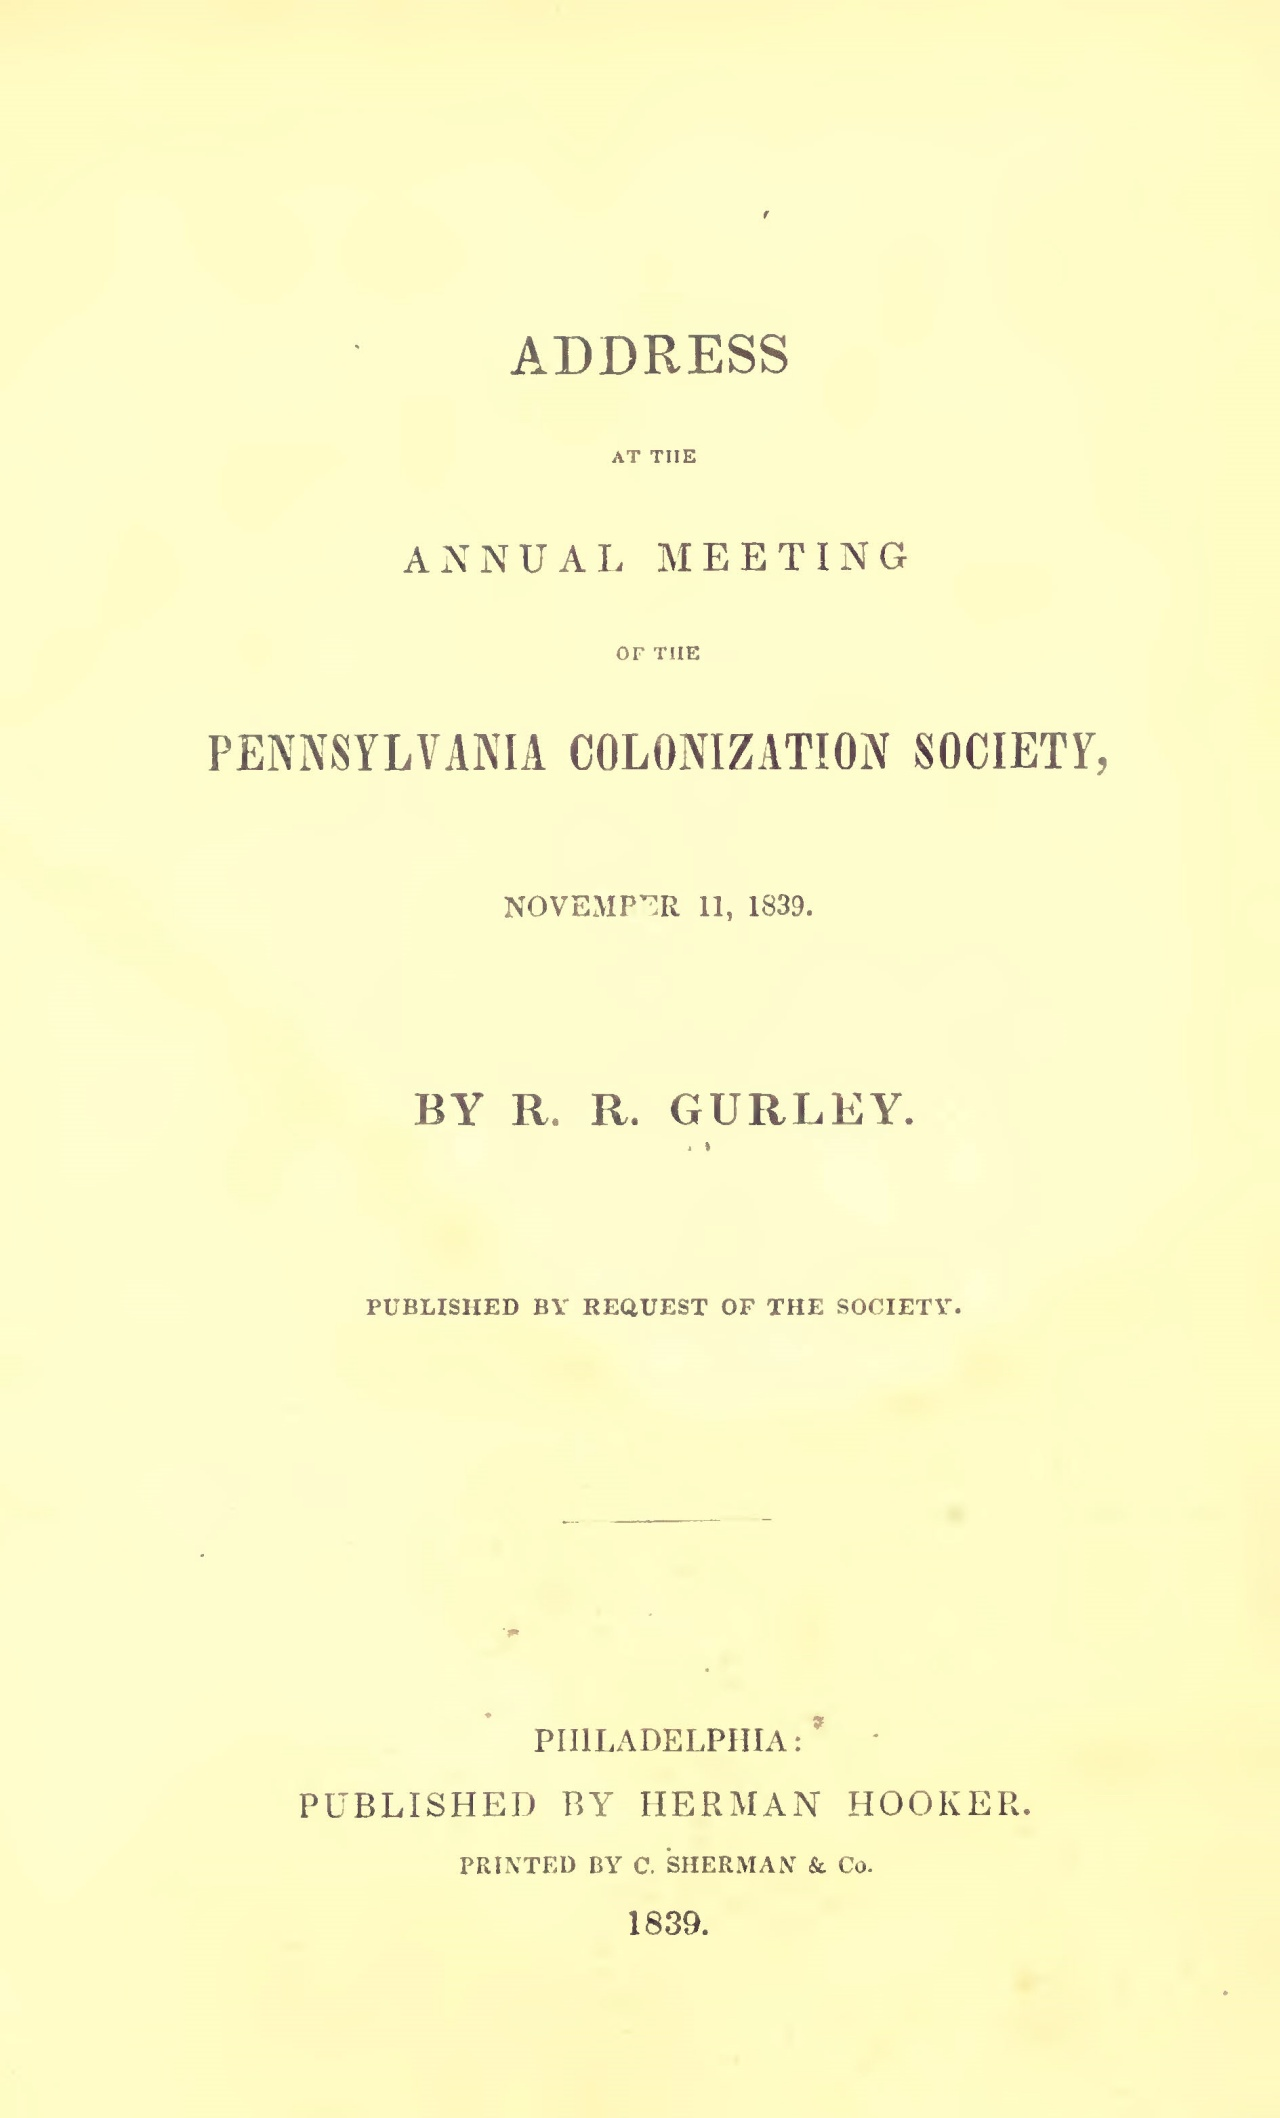 Gurley, Ralph Randolph, 1839 Address at the Pennsylvania Colonization Society Title Page.jpg